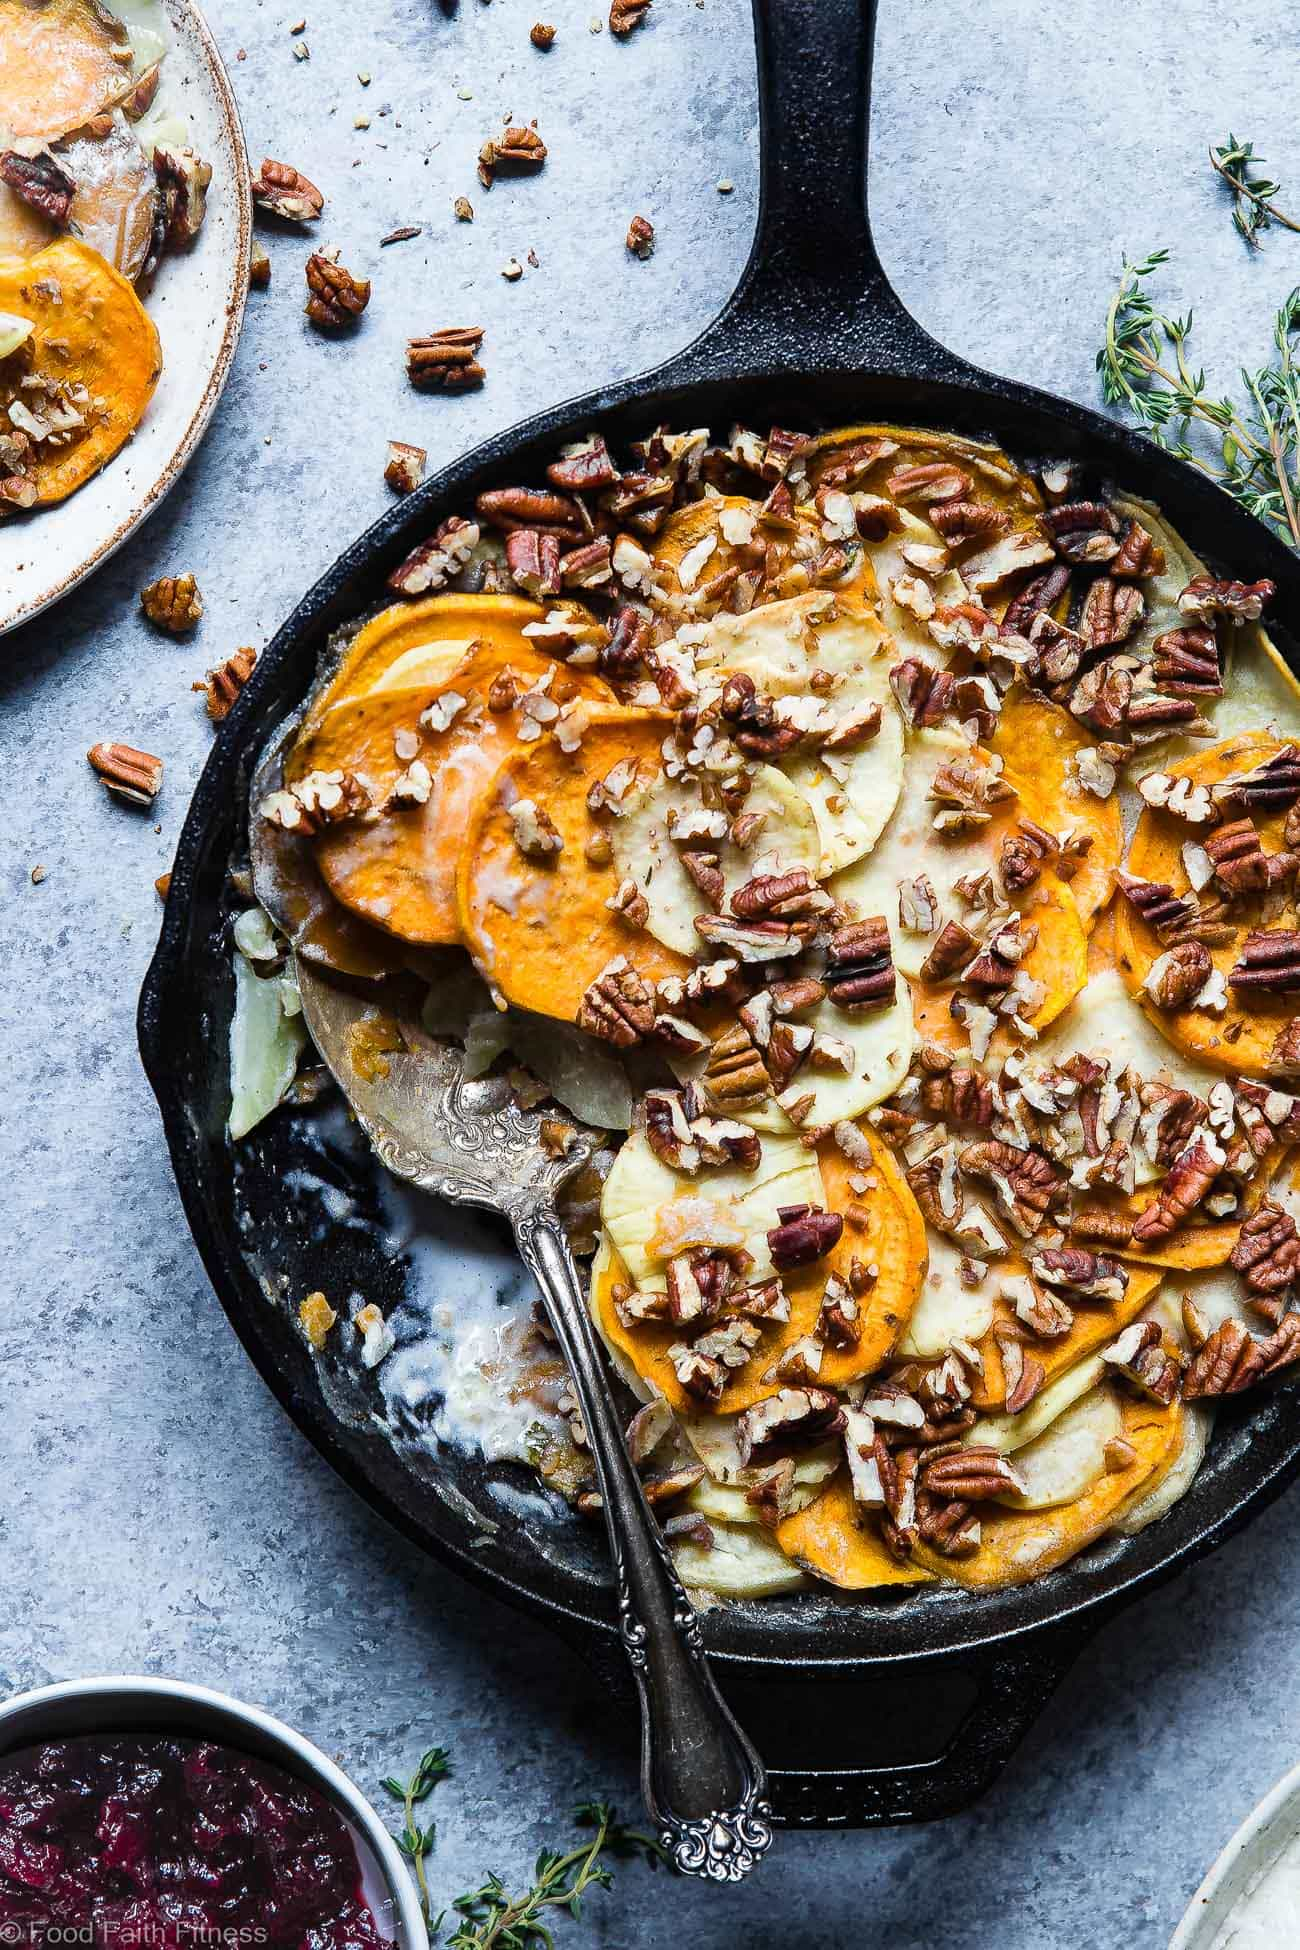 Healthy Scalloped Sweet Potatoes Casserole - Ever wondered how to make scalloped sweet potatoes? These are so rich and creamy, you will never believe it's gluten free and paleo/vegan/whole30 compliant! Perfect for a healthy Thanksgiving! | Foodfaithfitness.com | @FoodFaithFit